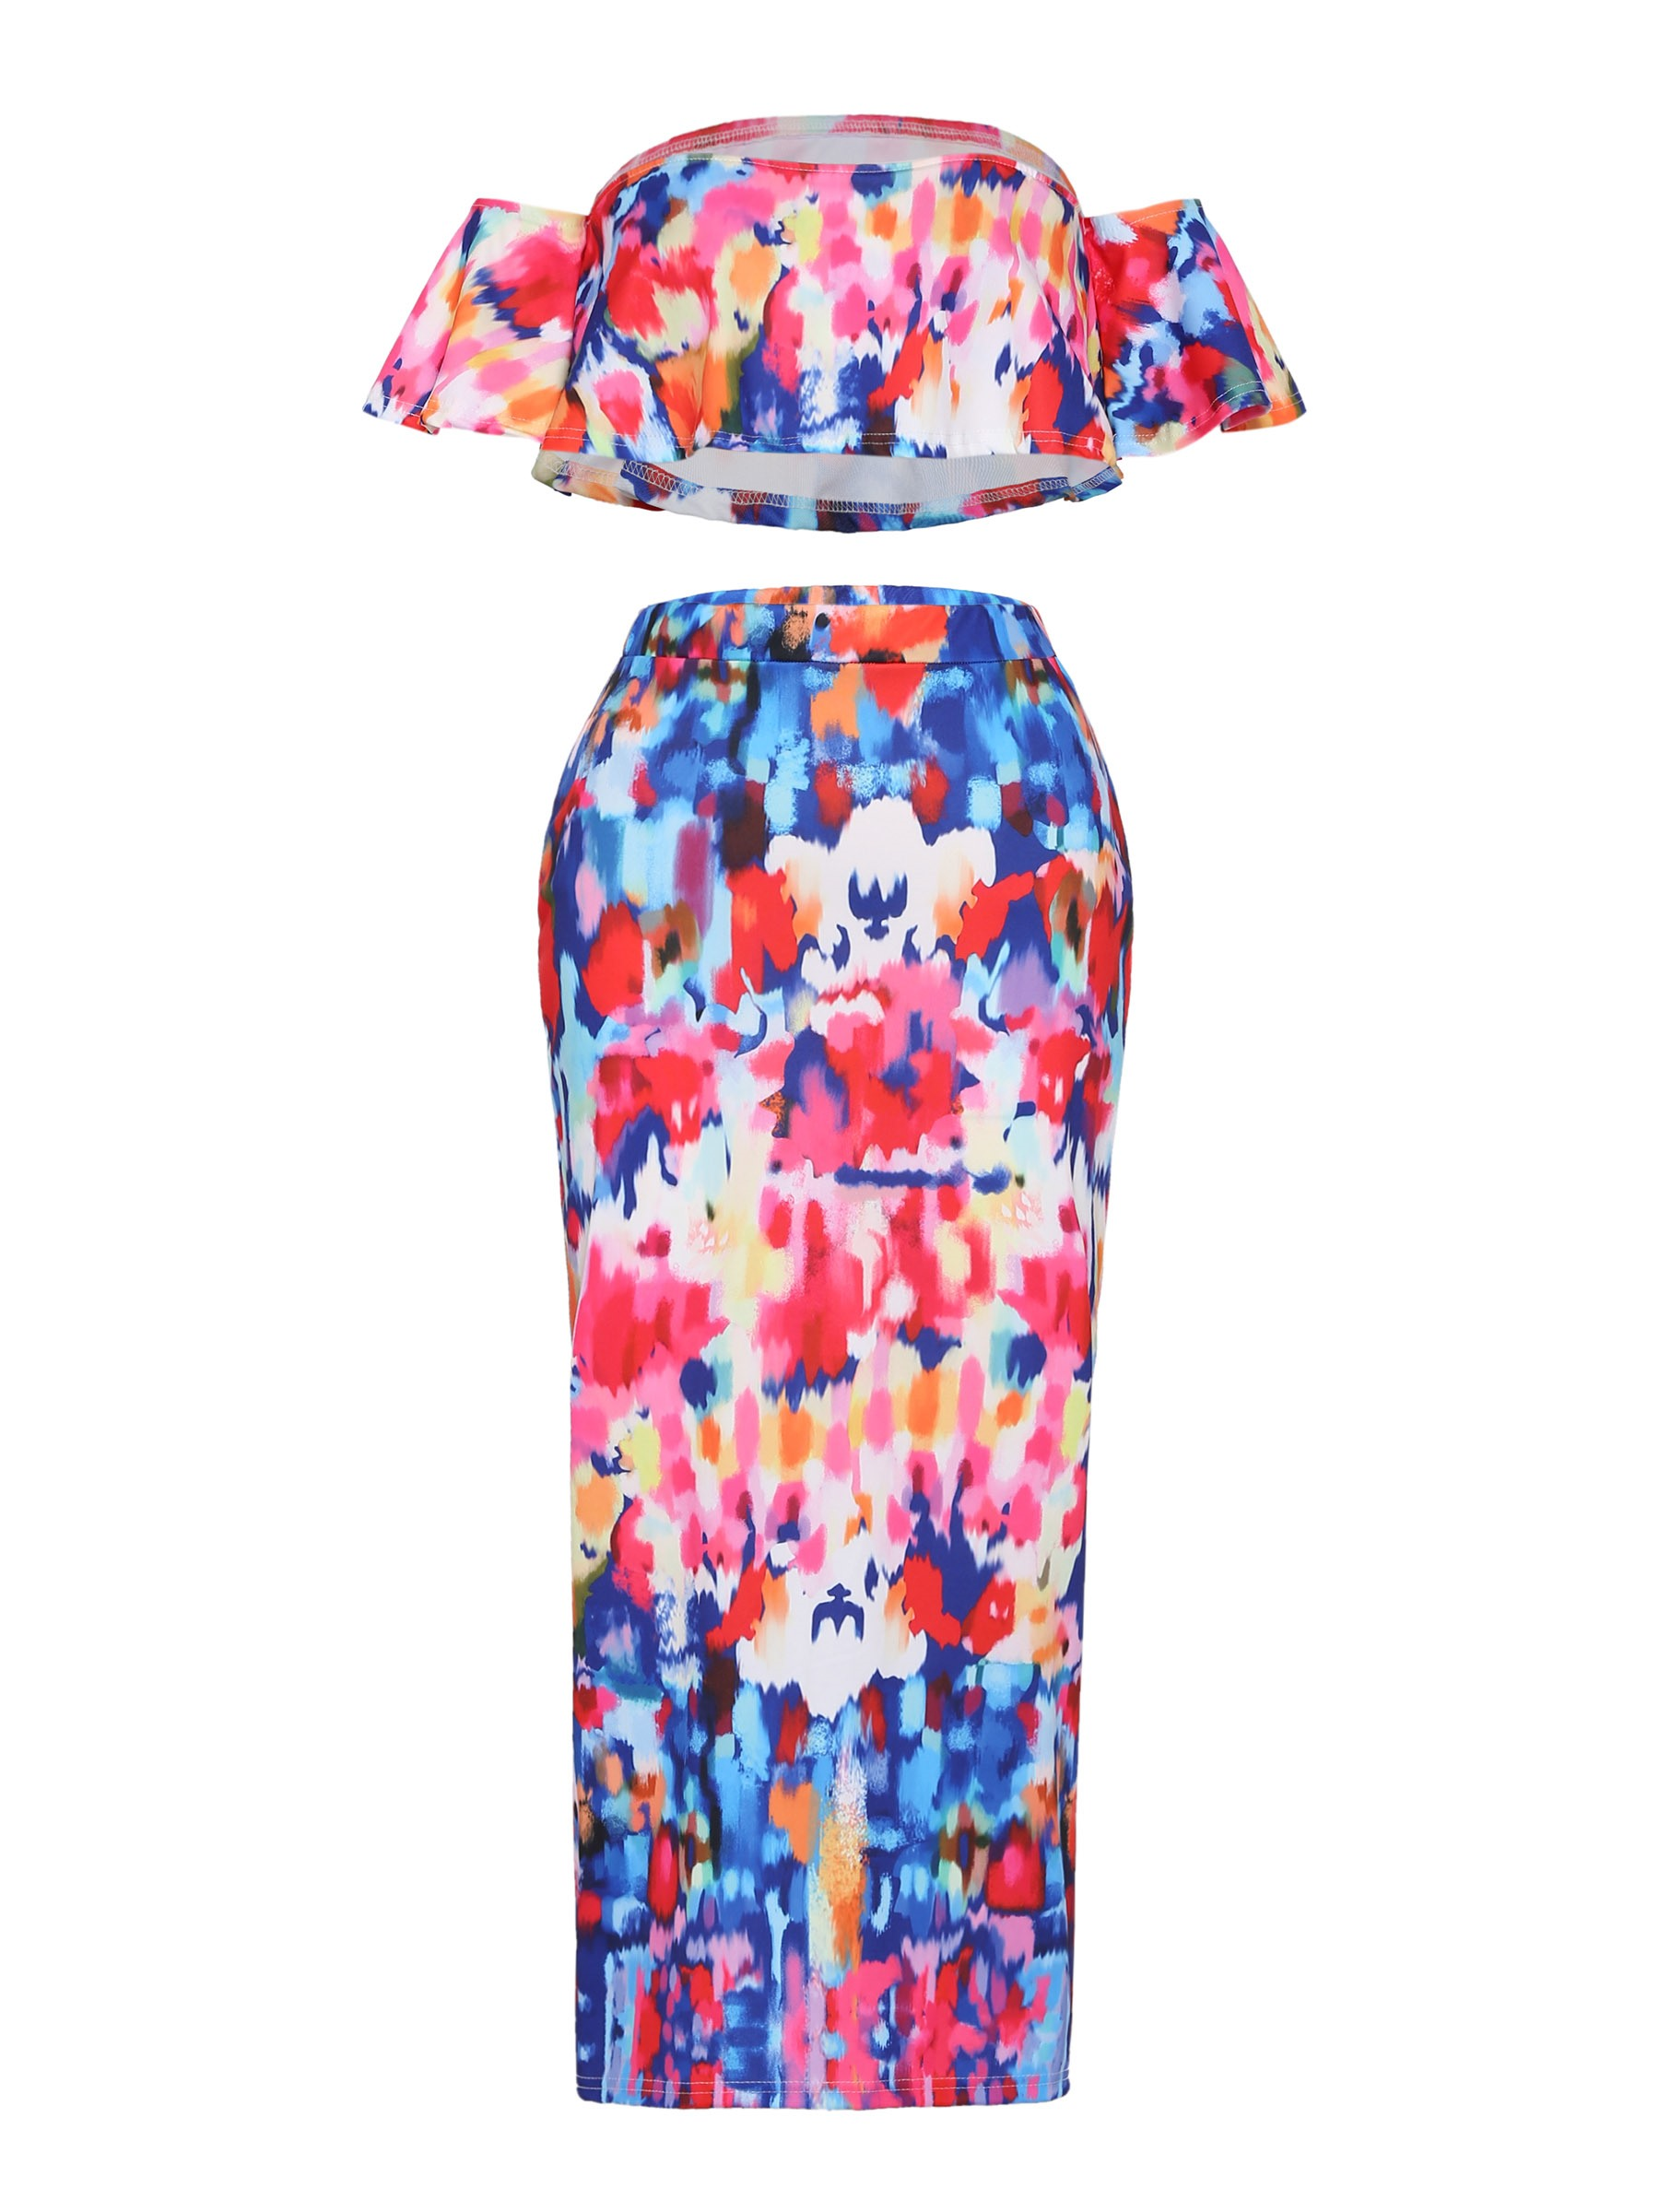 Ericdress Off the Shoulder Tops and Skirt Women's Two Piece Set